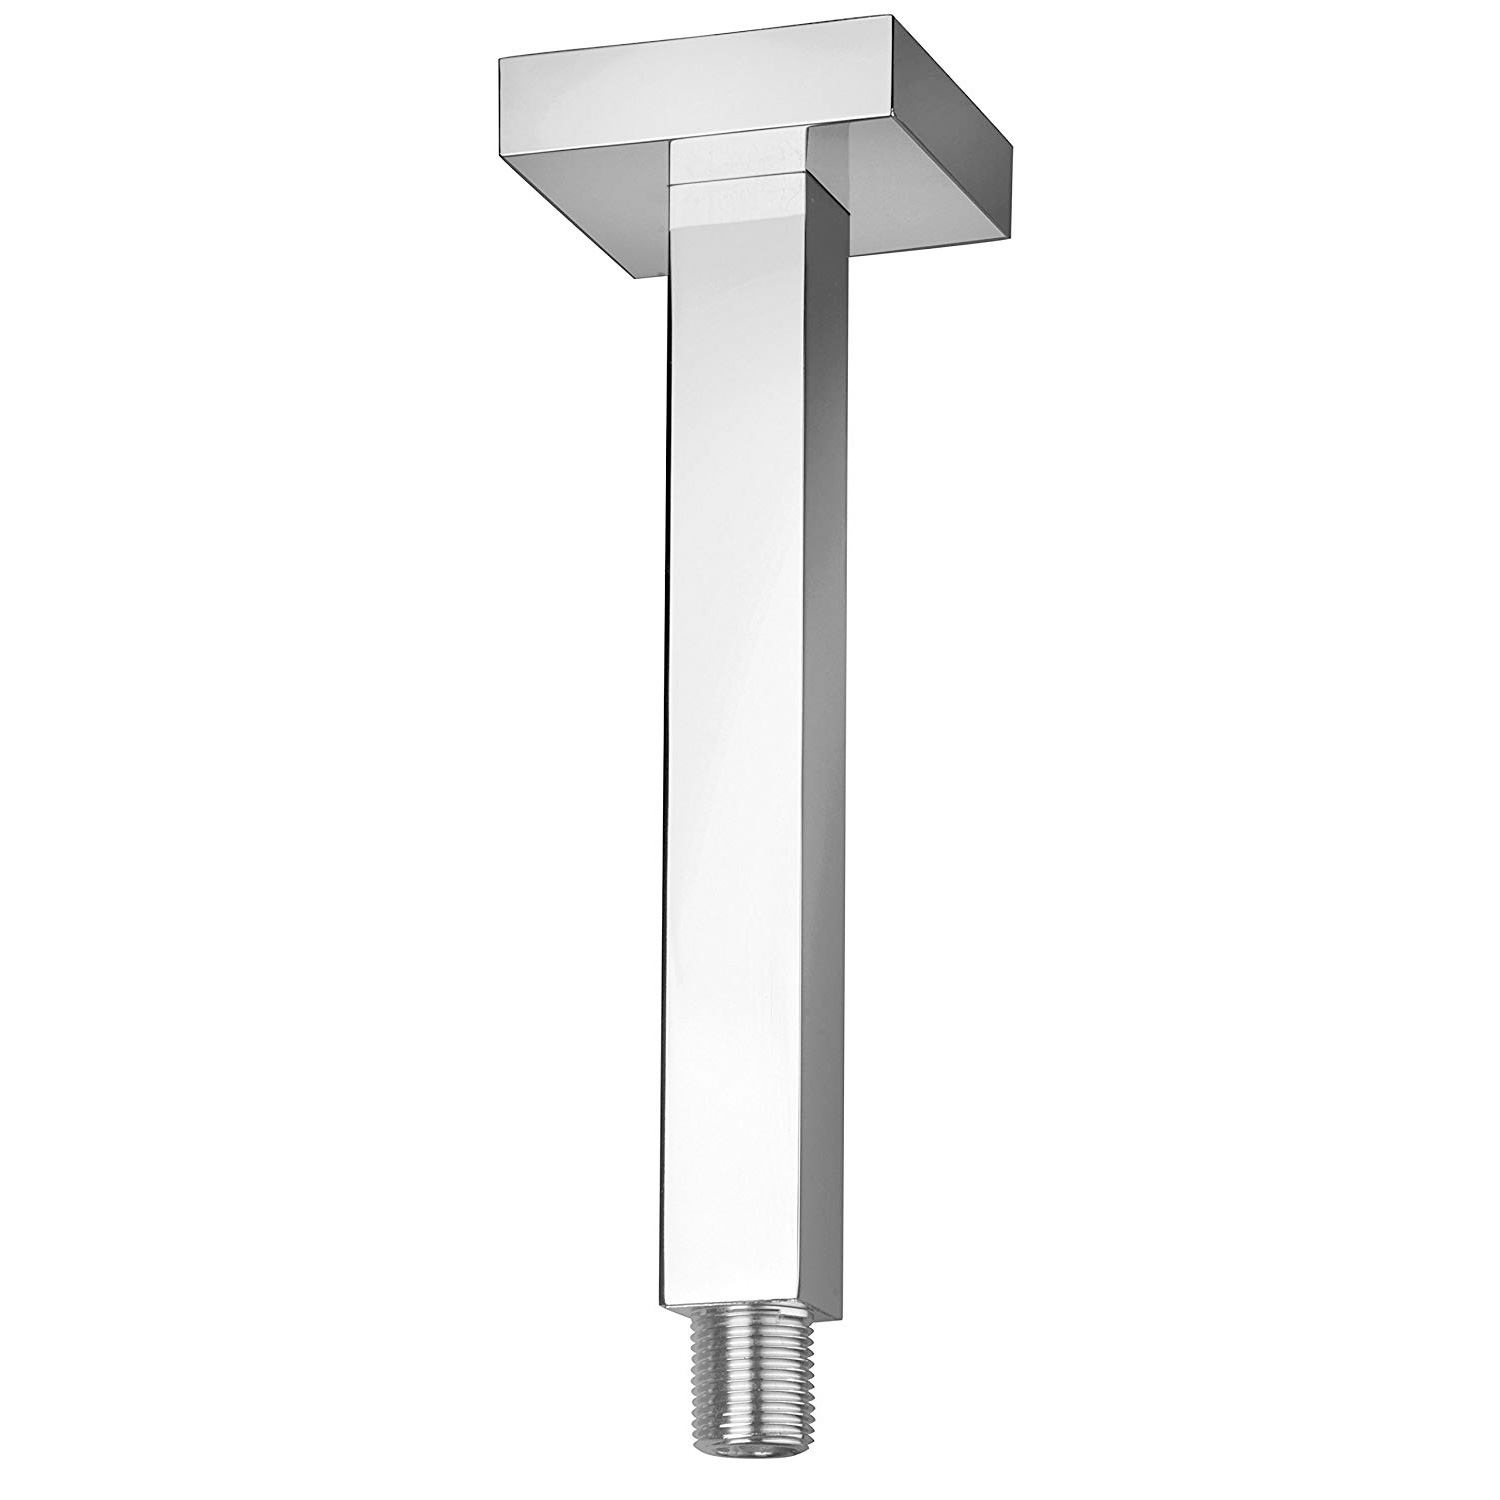 LaToscana-SQCR74406 Chrome 6 in. ceiling mount shower arm with strengthened fixing